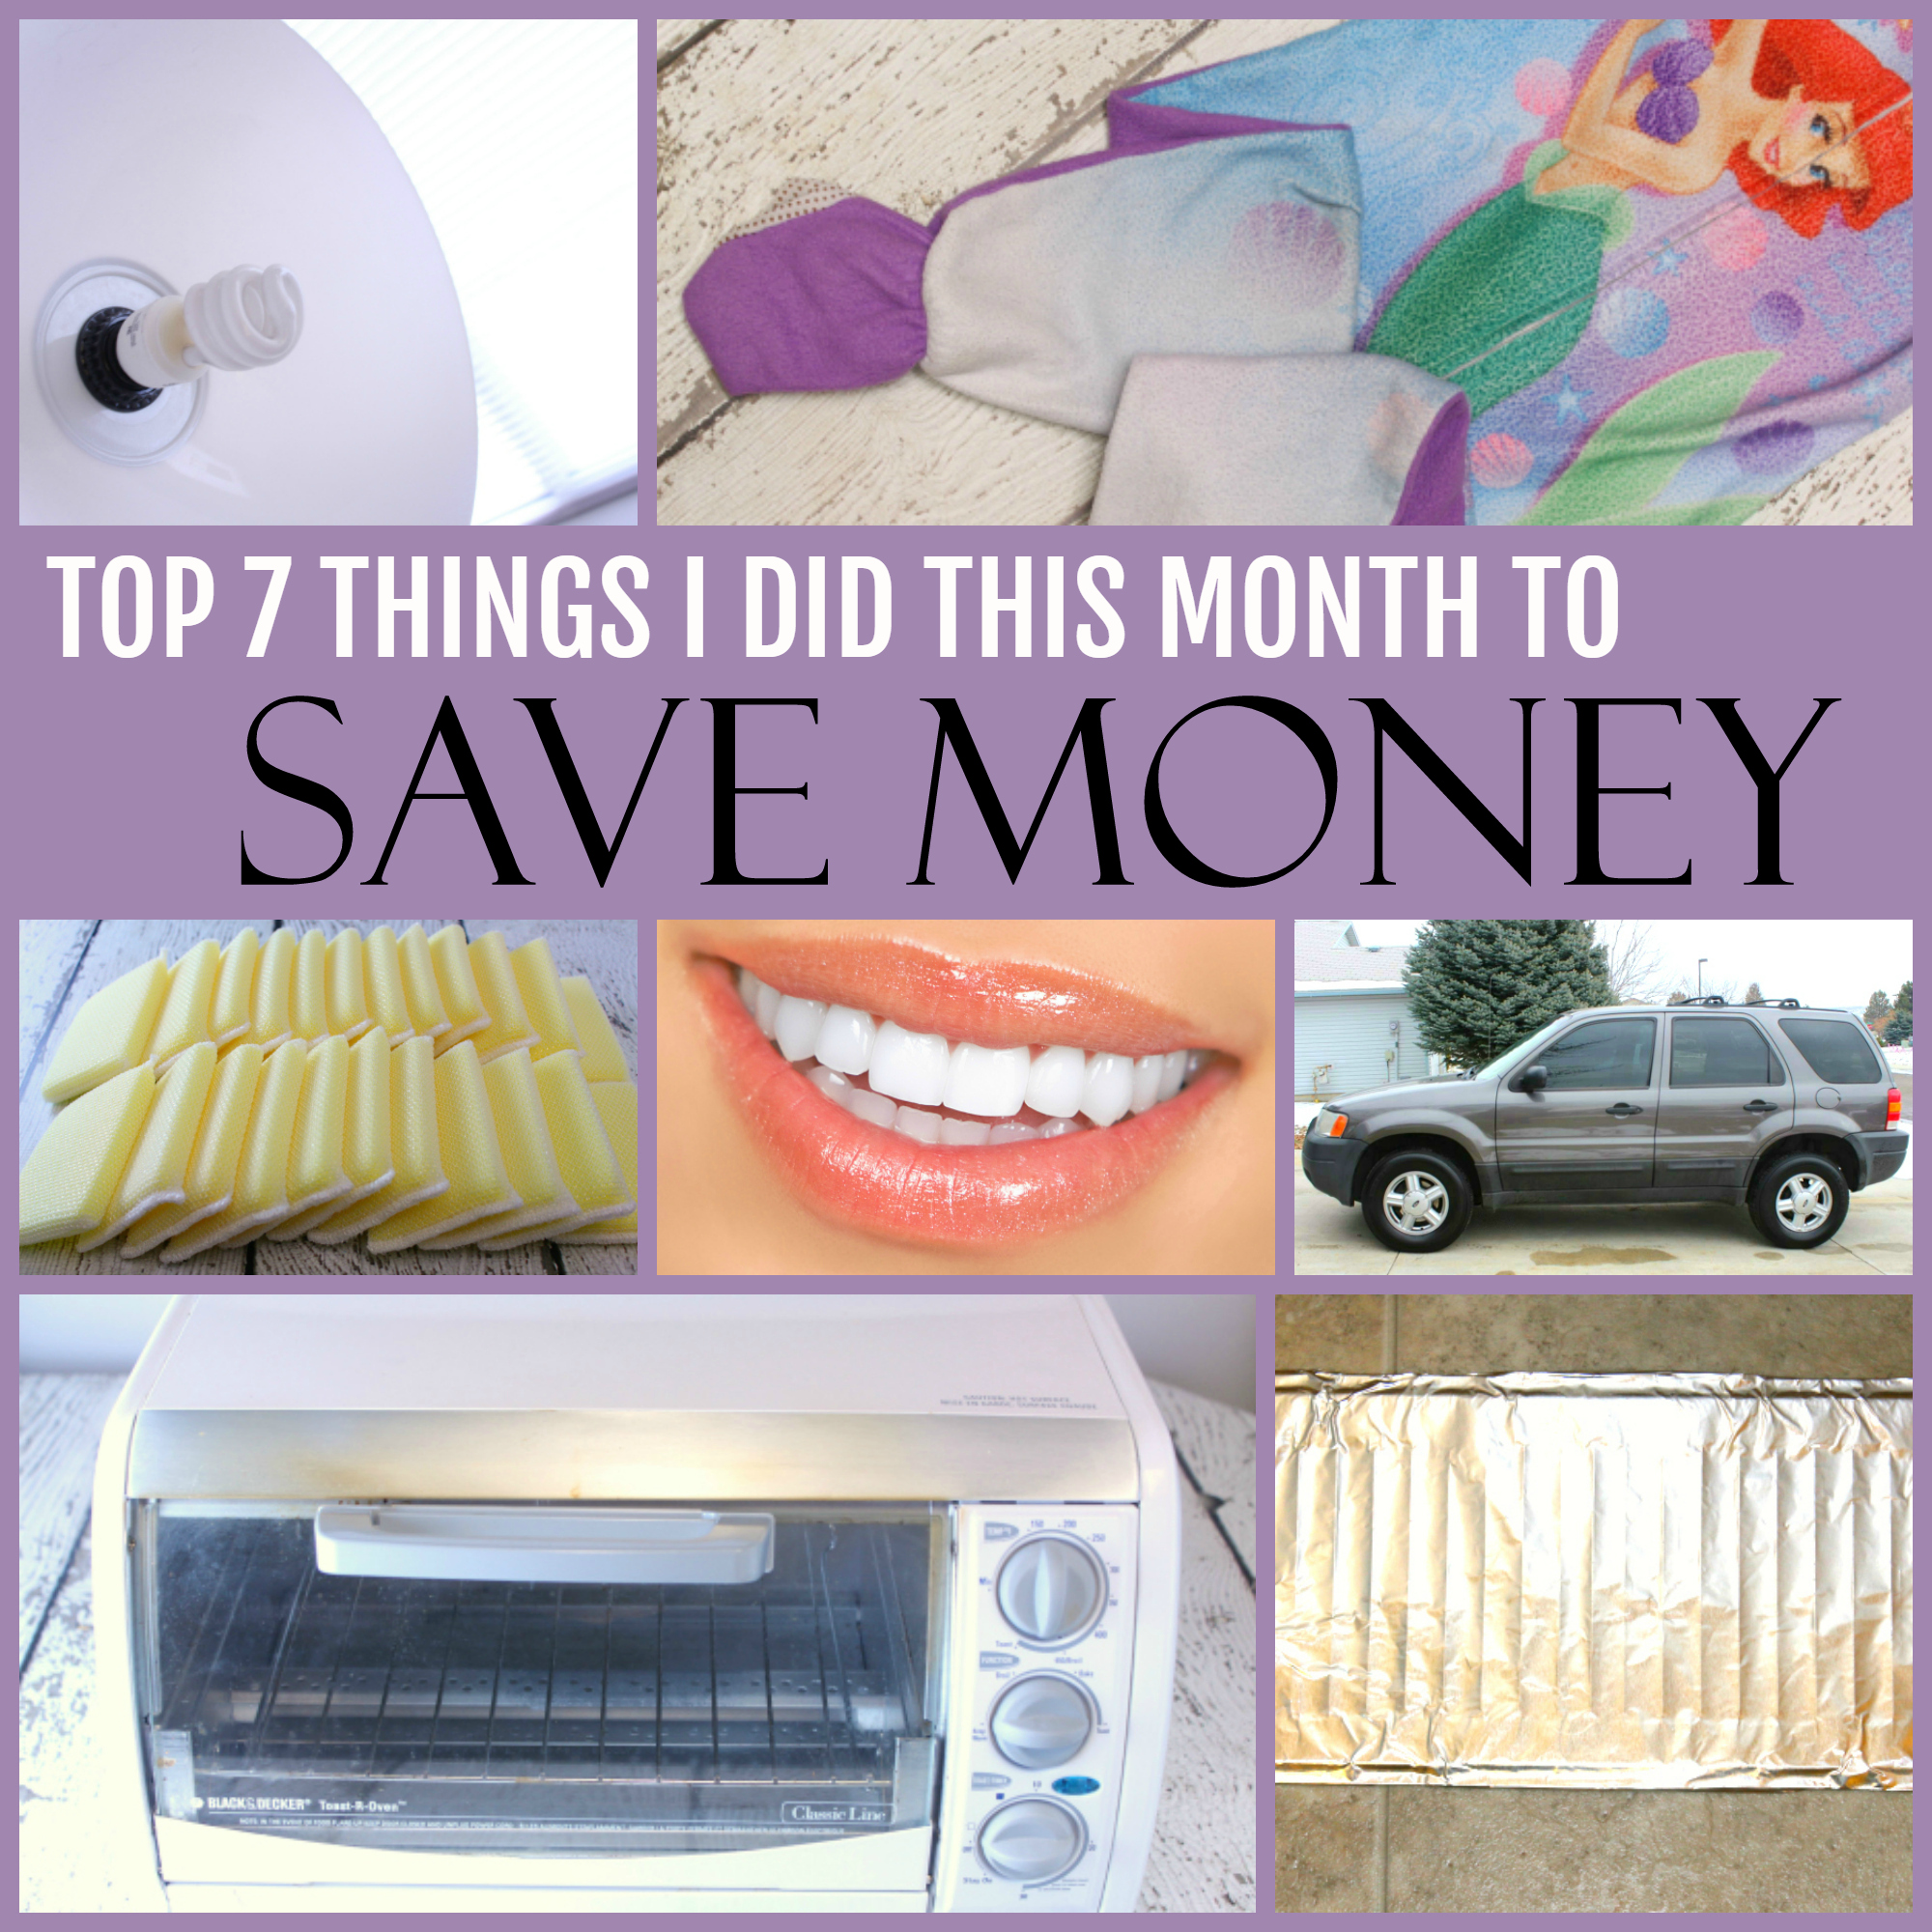 The Top 7 Things I did this month to save money